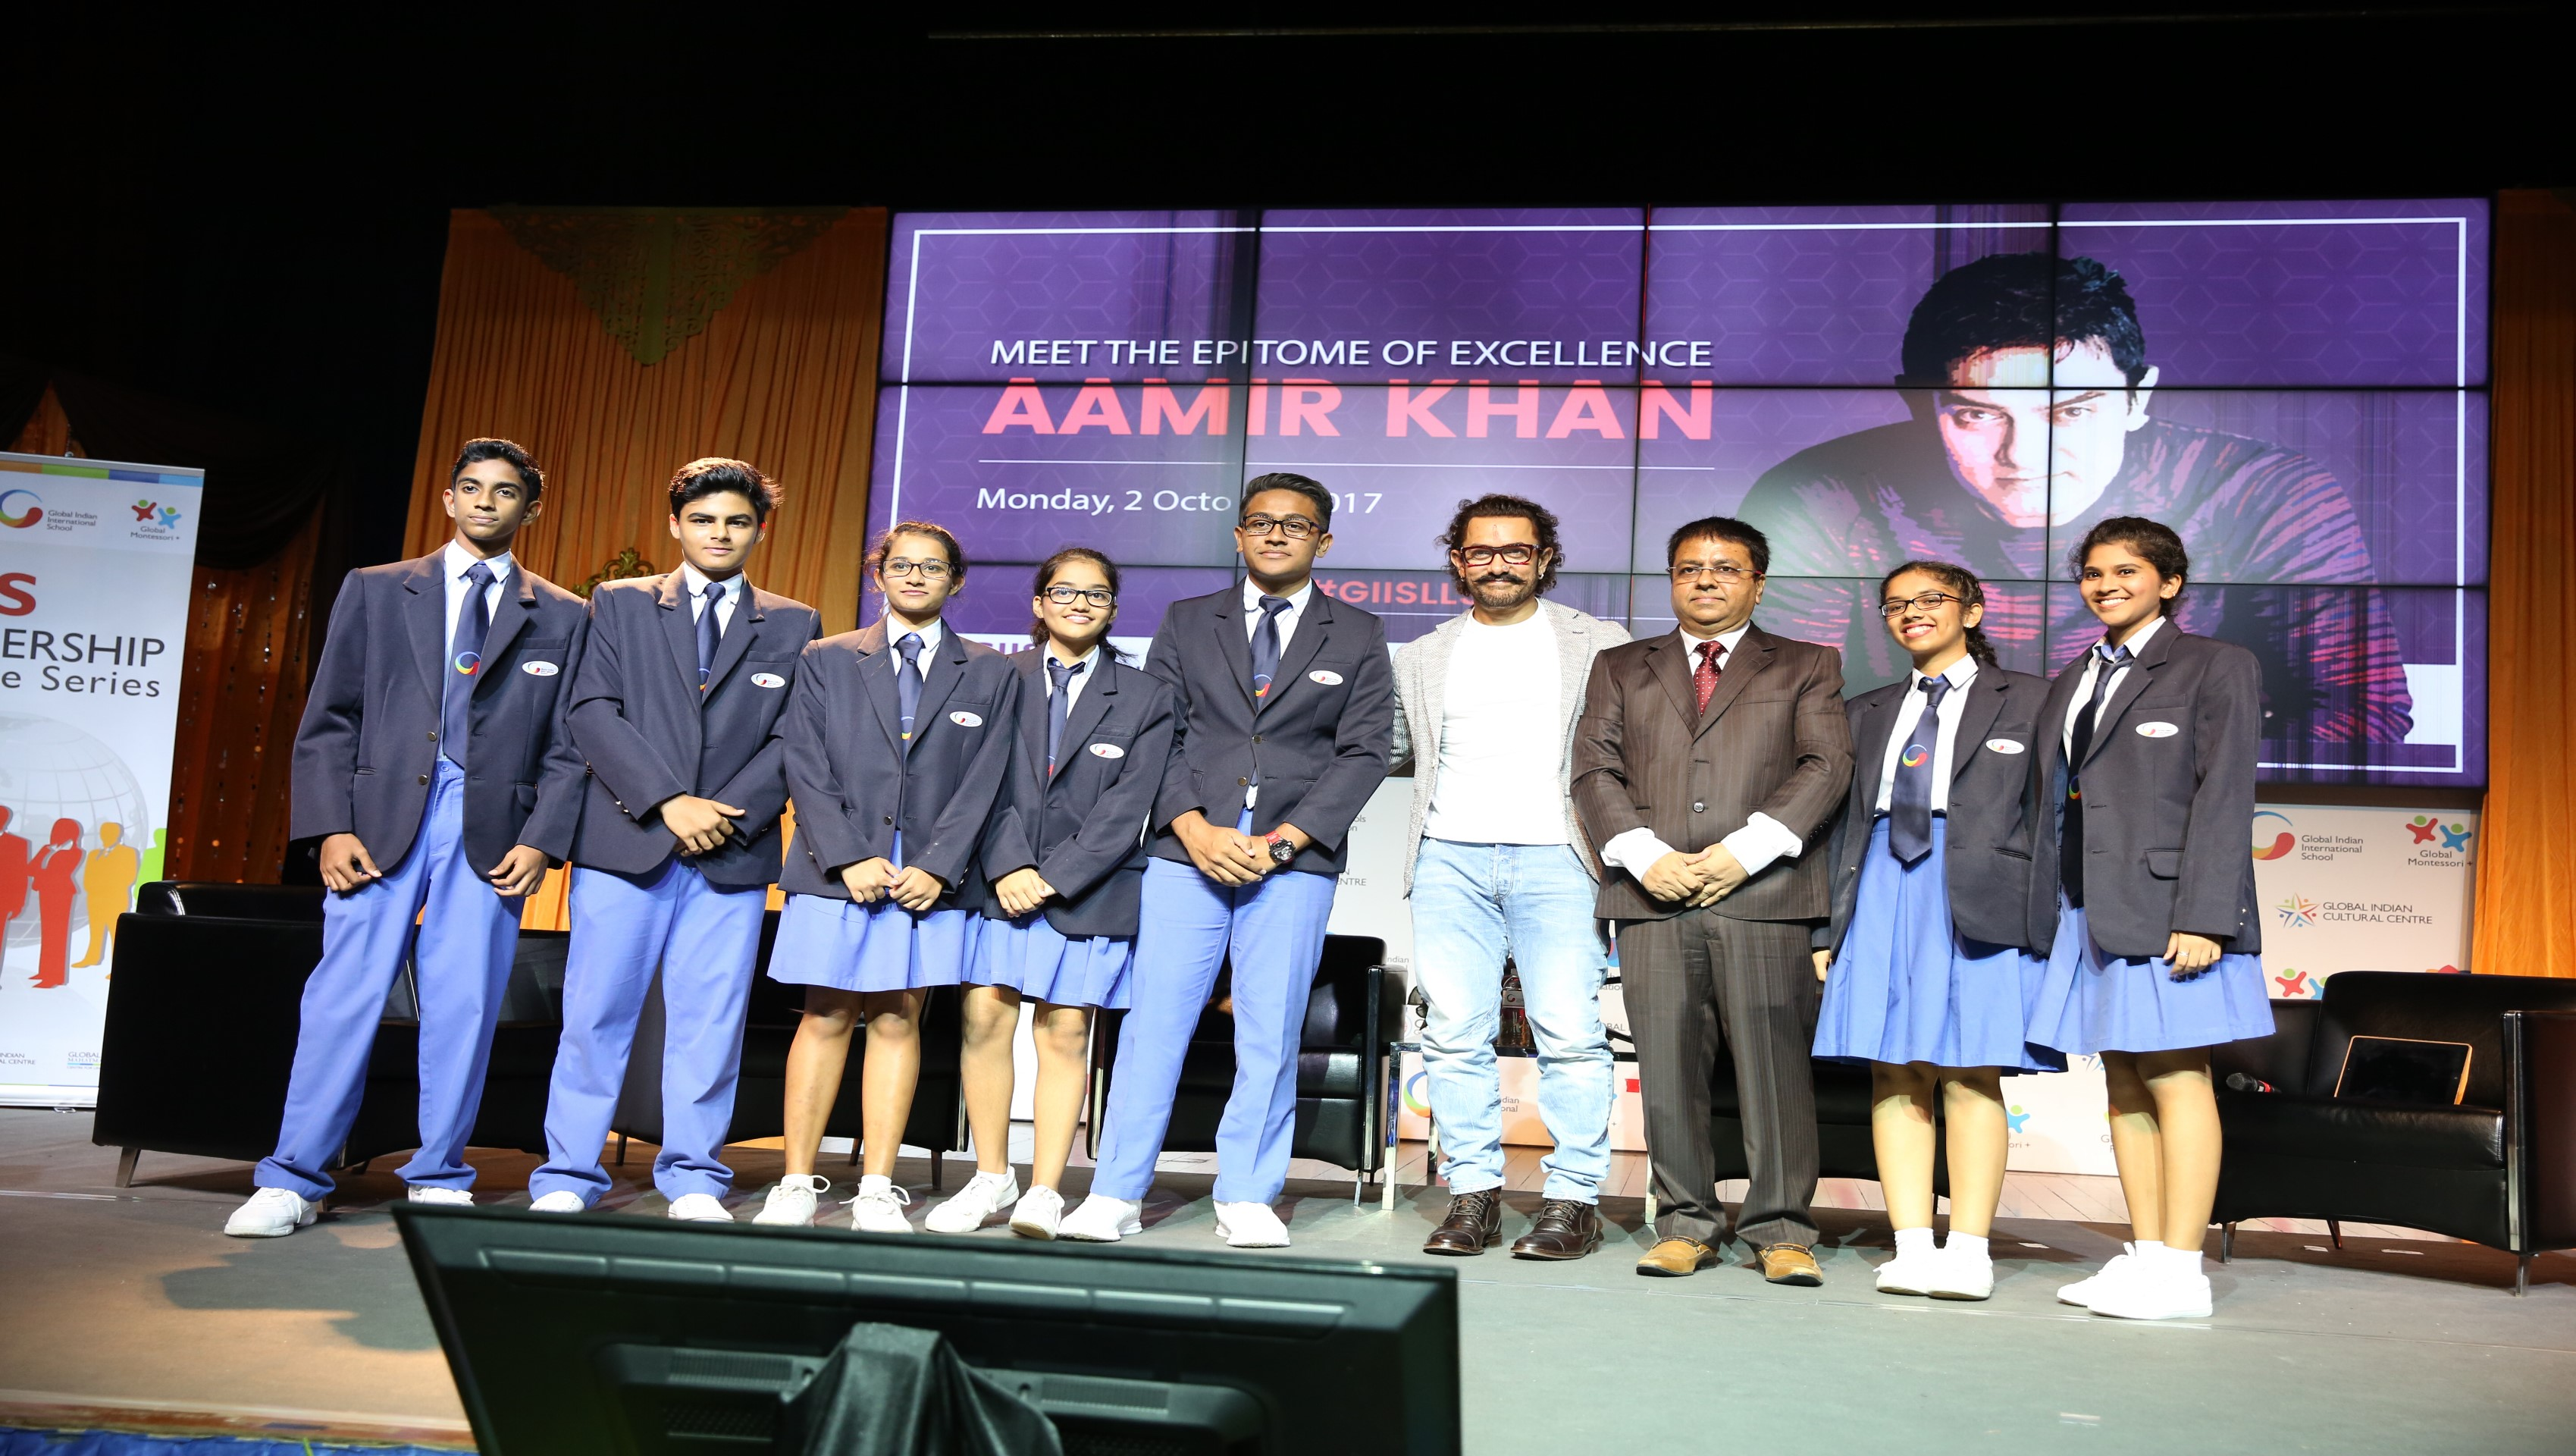 Aamir Khan with GIIS students and Atul Temurnikar - Chairman and Co-Founder of Global Indian International School.